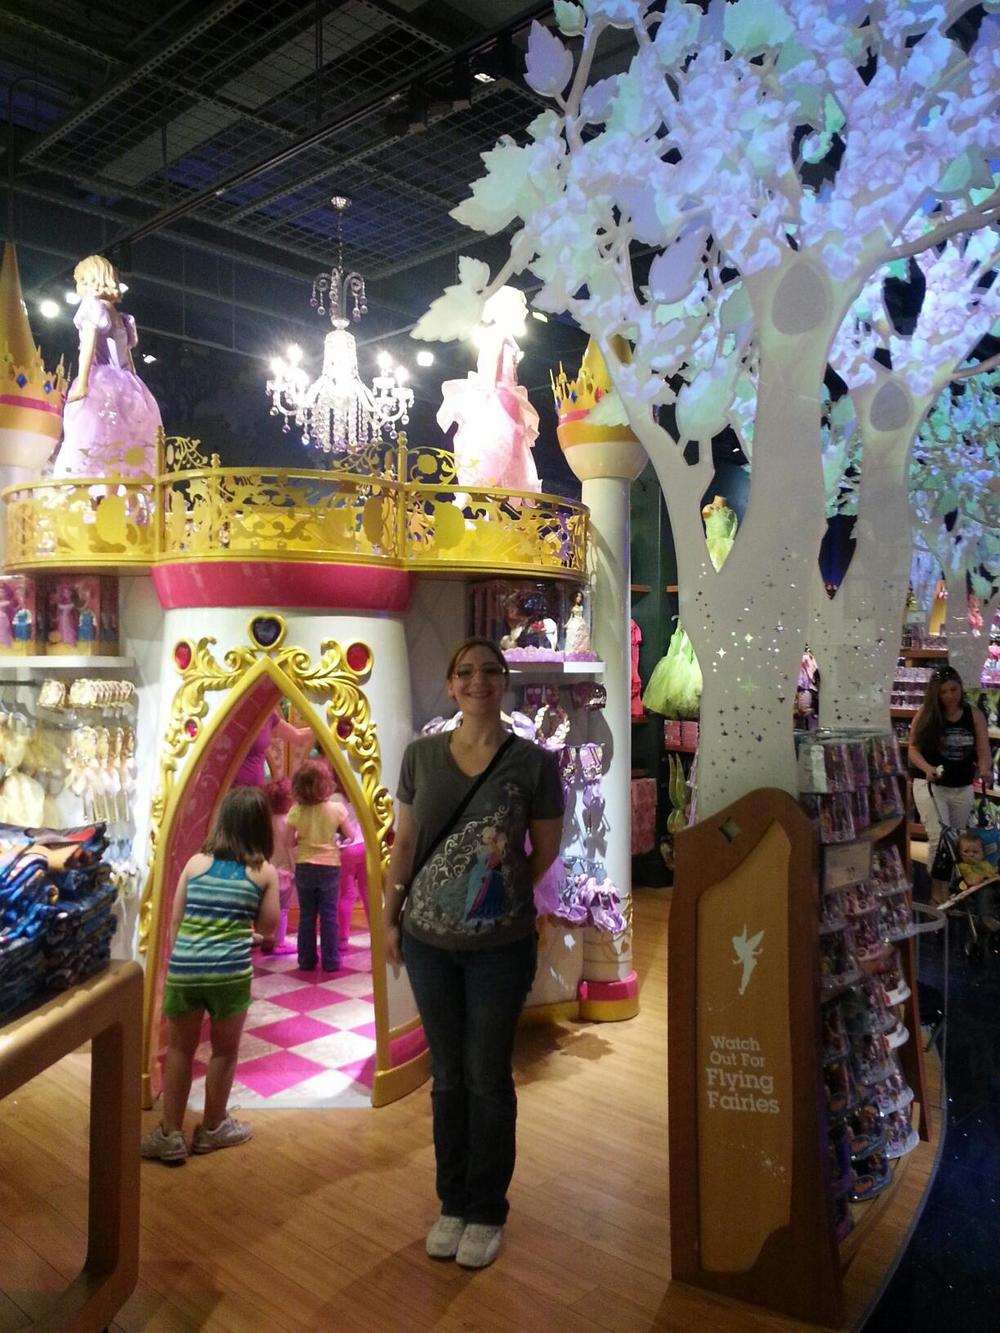 The Disney Store at Mall of America is fancy!